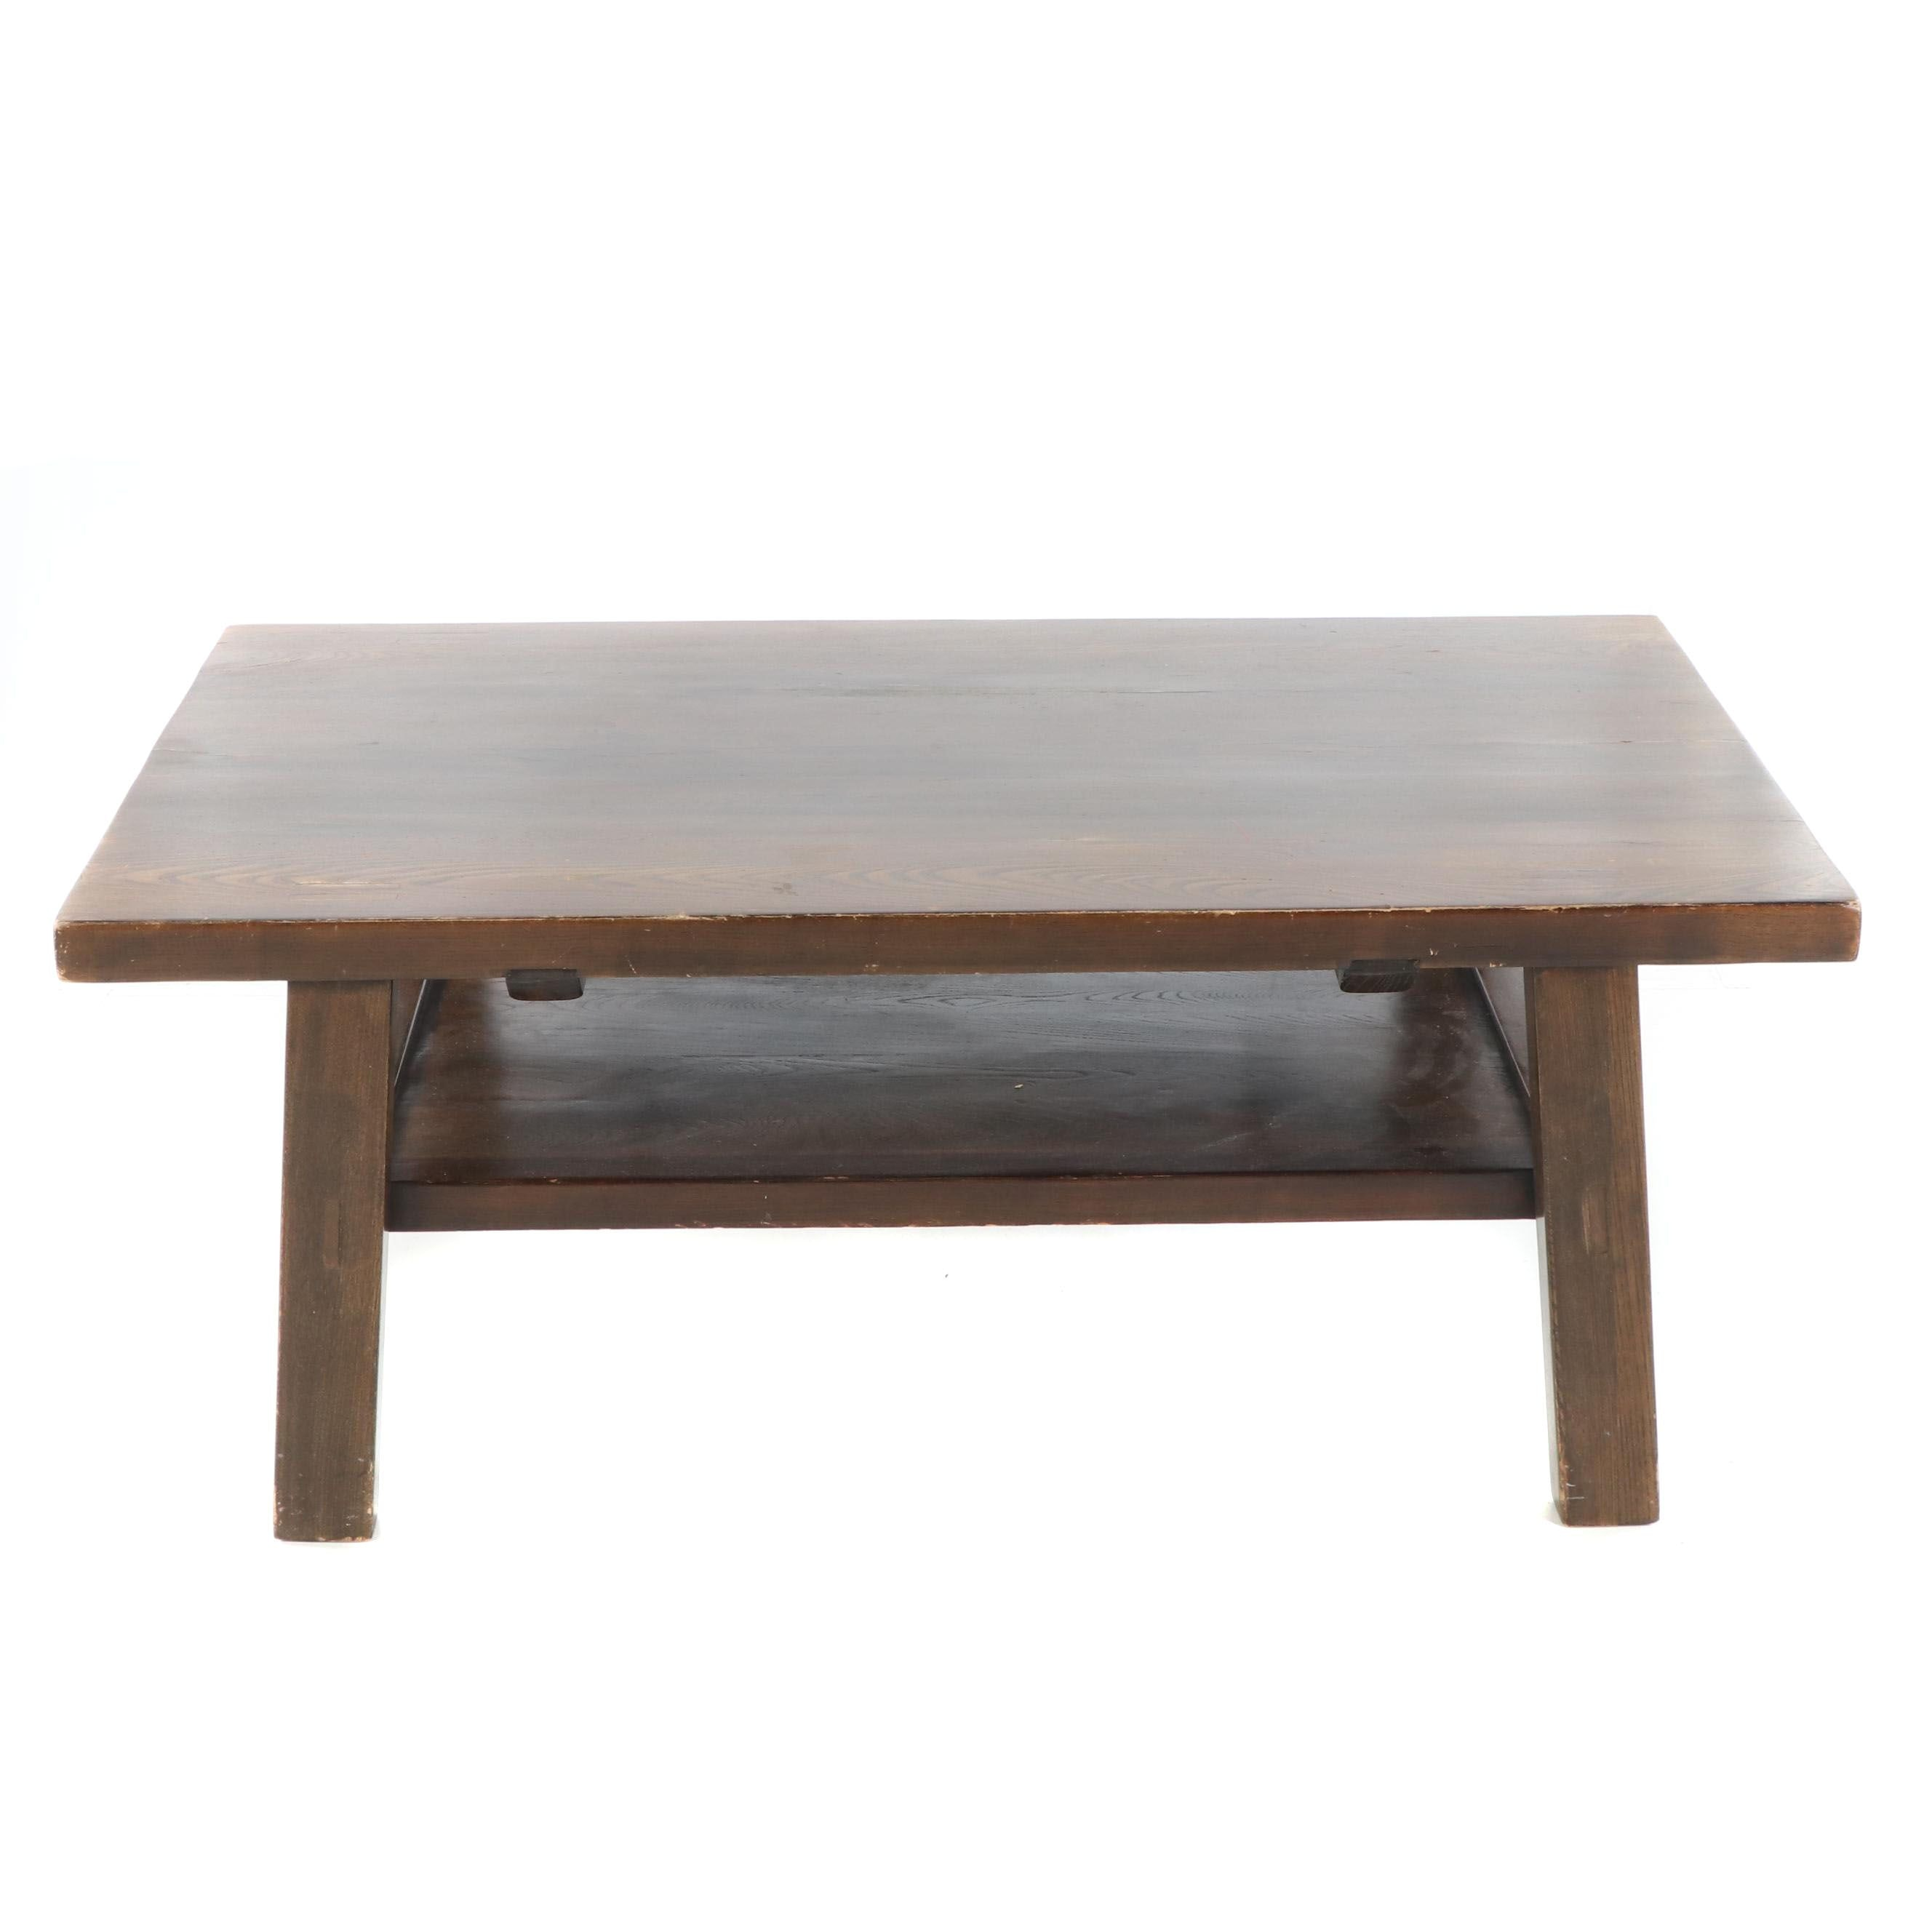 Arts and Crafts Style Stained Oak Coffee Table, 21st Century